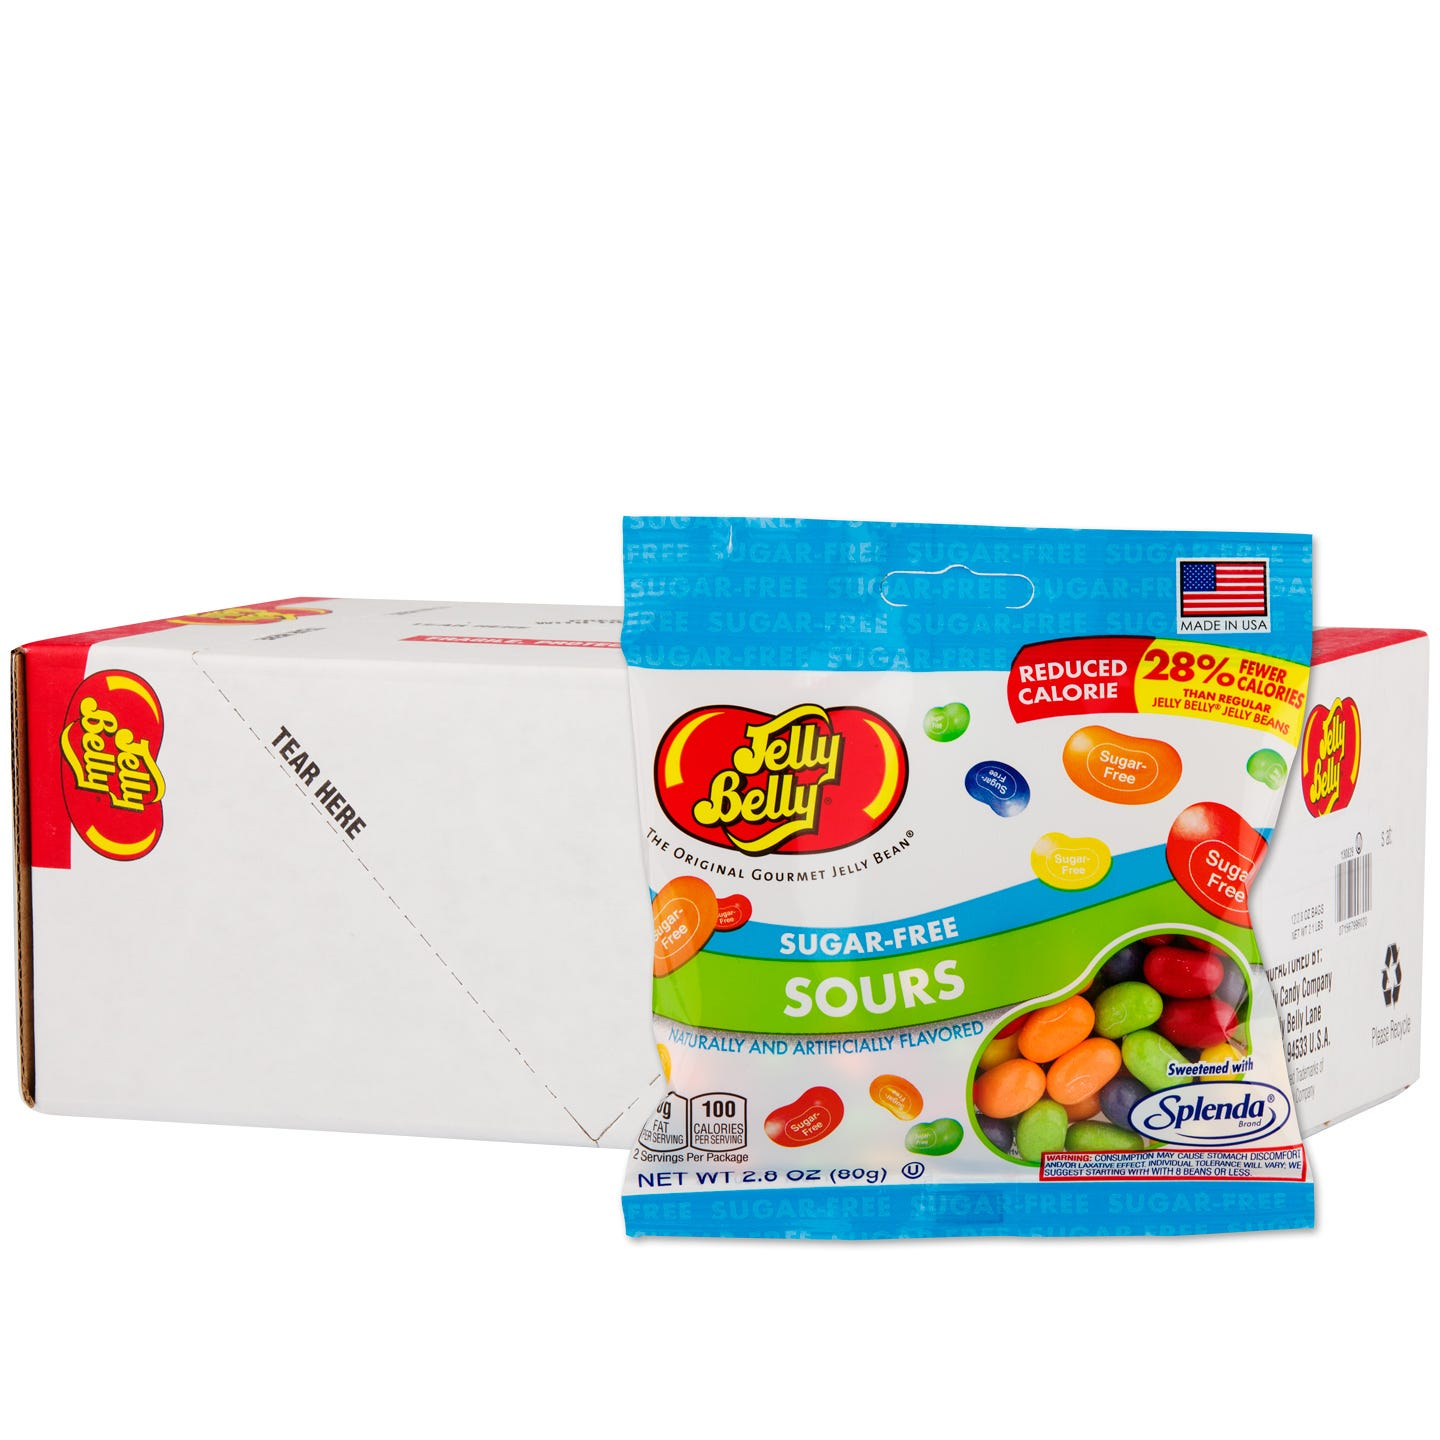 Sugar-Free Jelly Bean Sours (12 ct) - Jelly Belly - Rapid Diet Weight Loss Products Shop